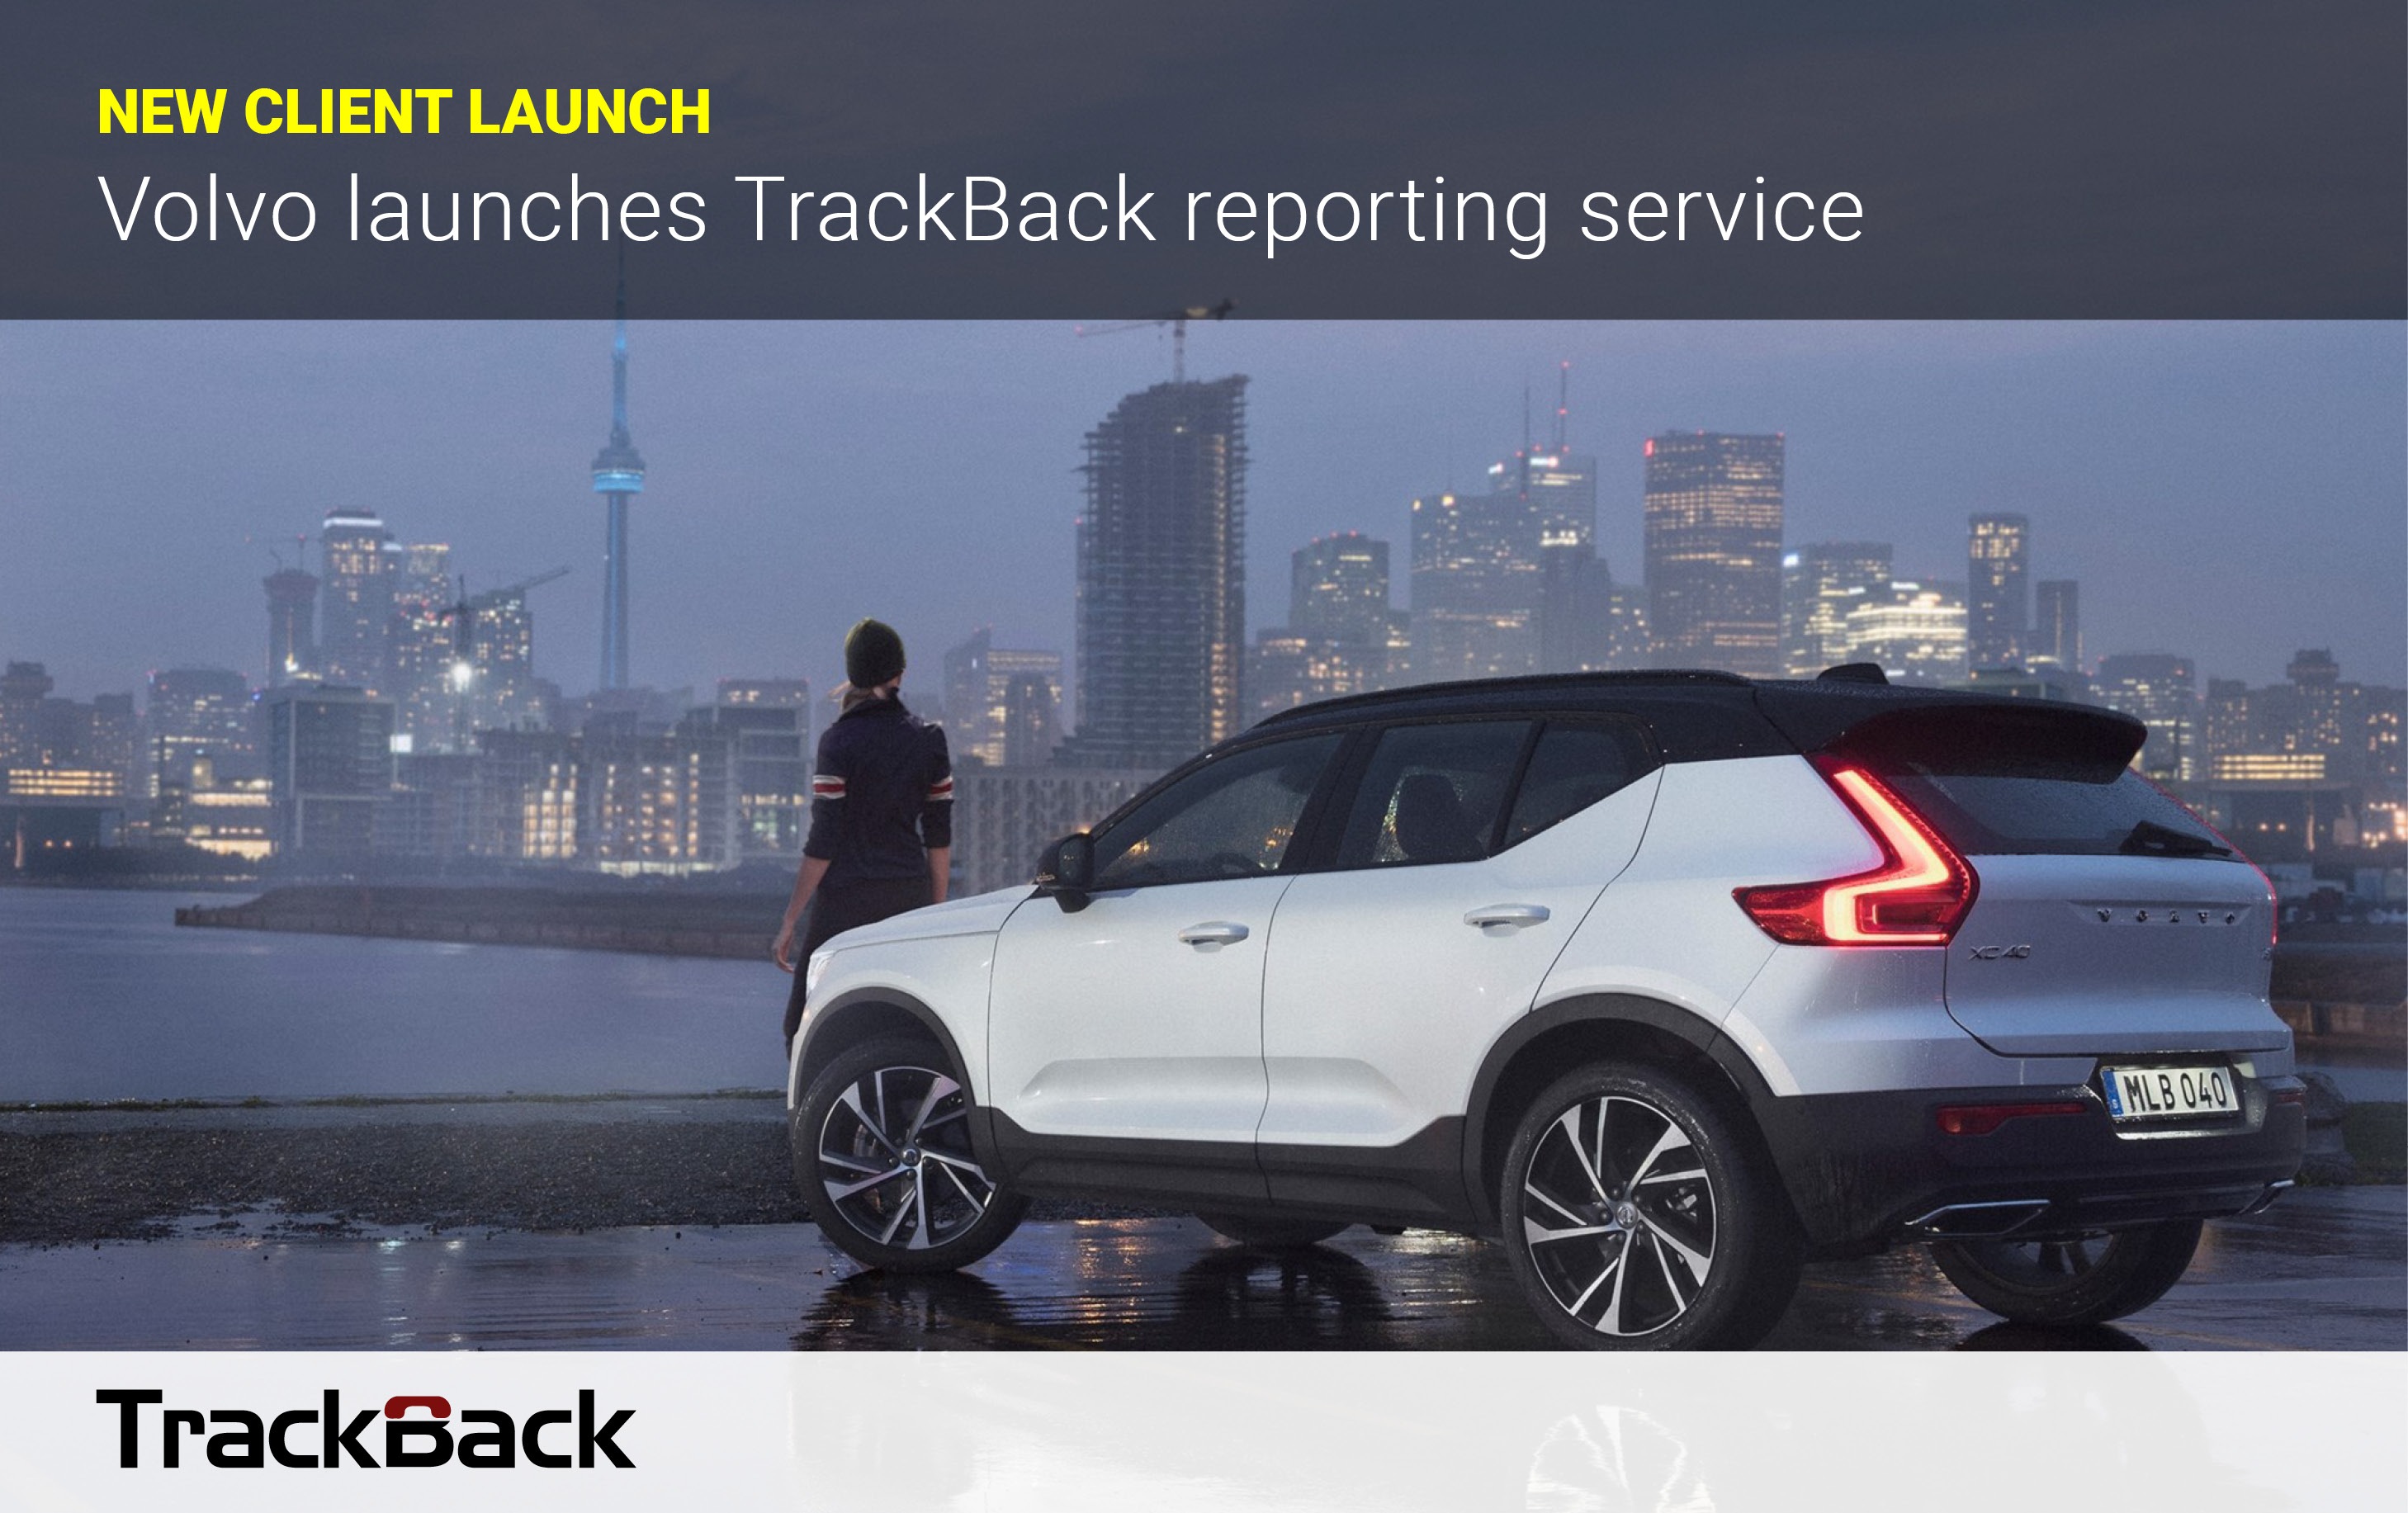 Volvo TrackBack launch